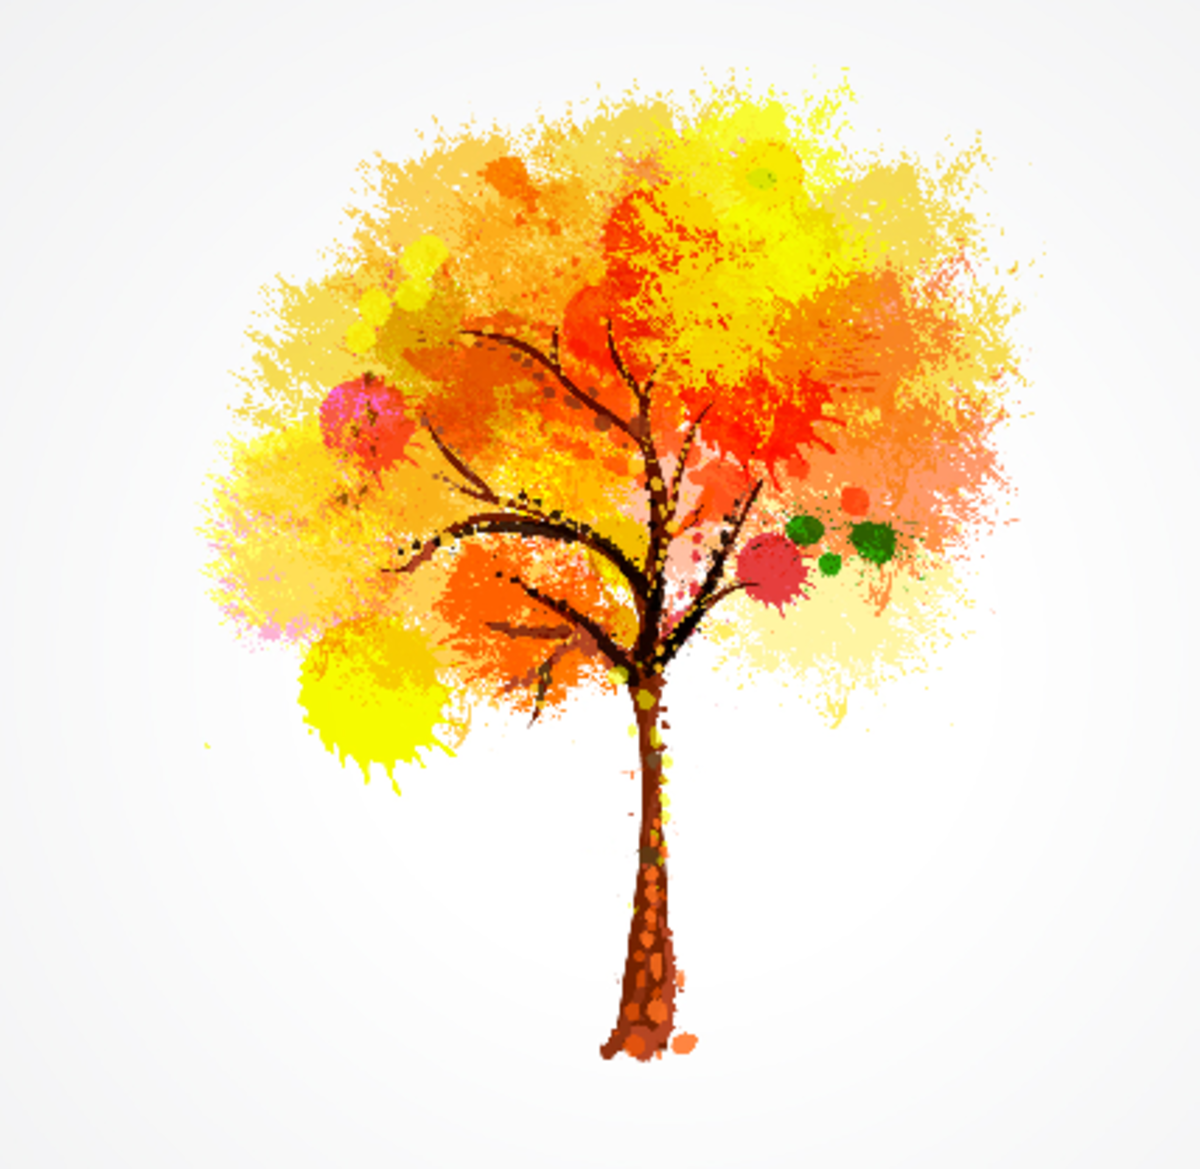 Artistic Autumn Tree